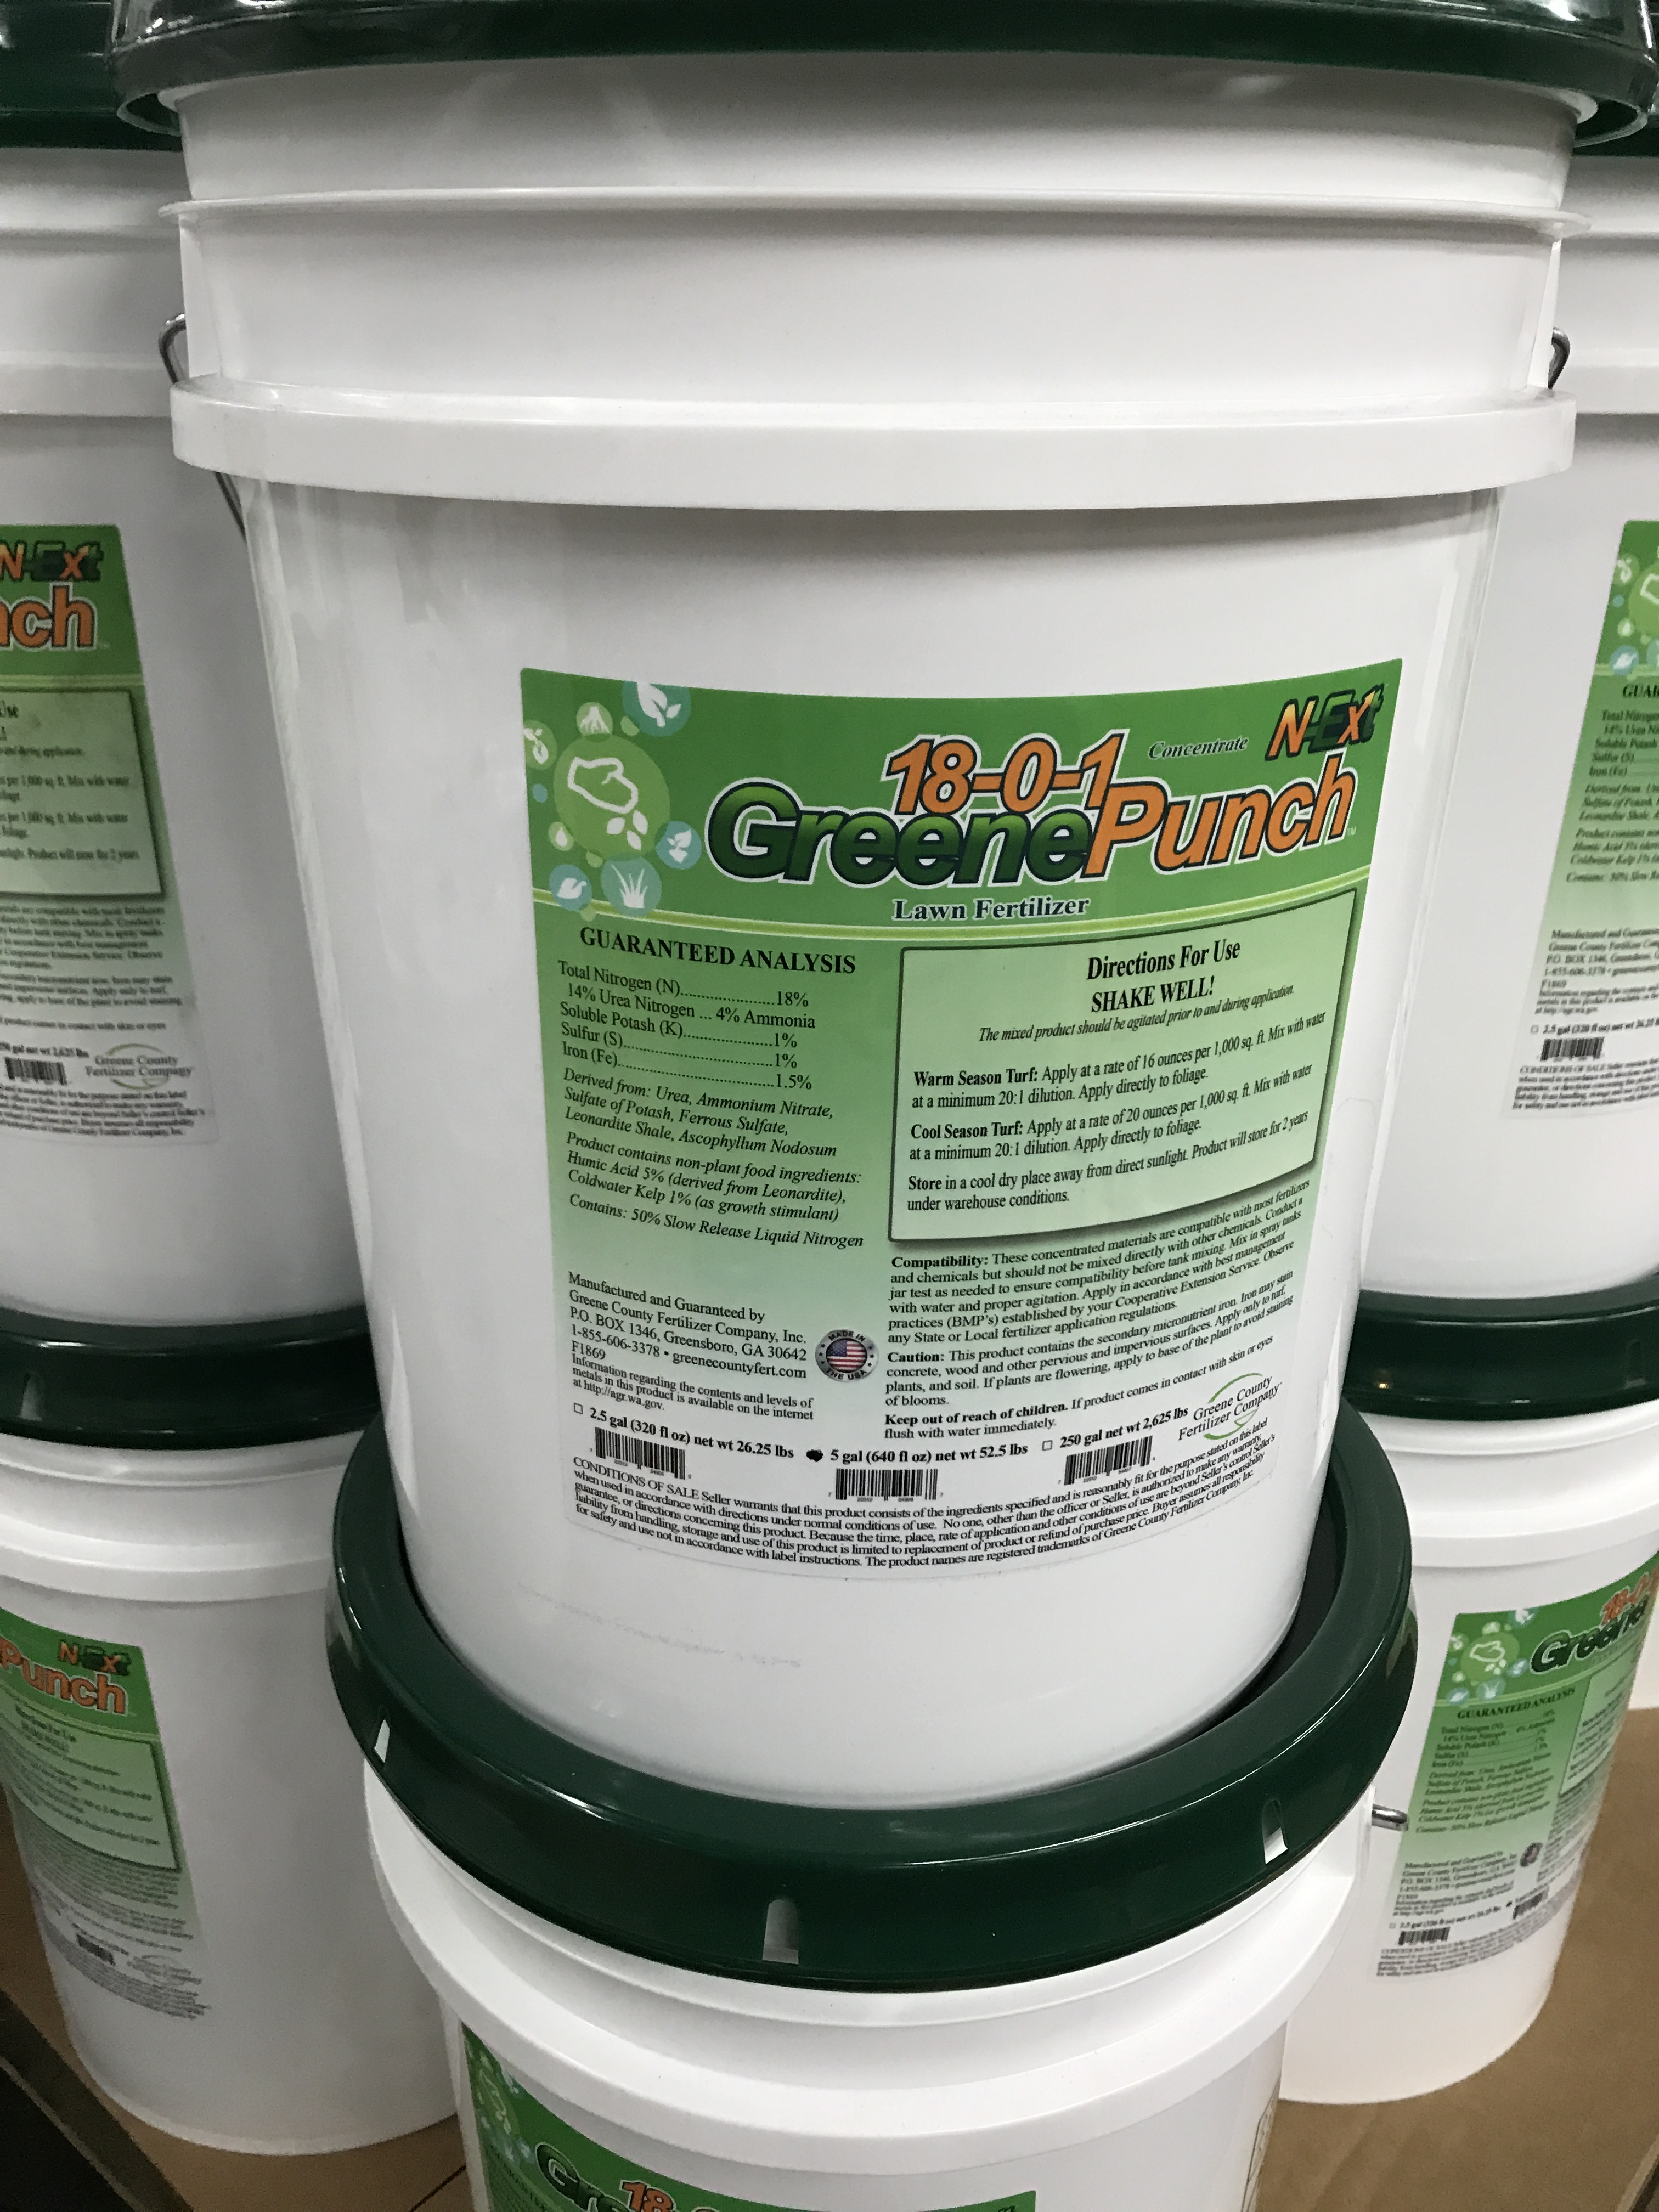 18 0 1 Greenepunch Lawn Fertilizer Greene County